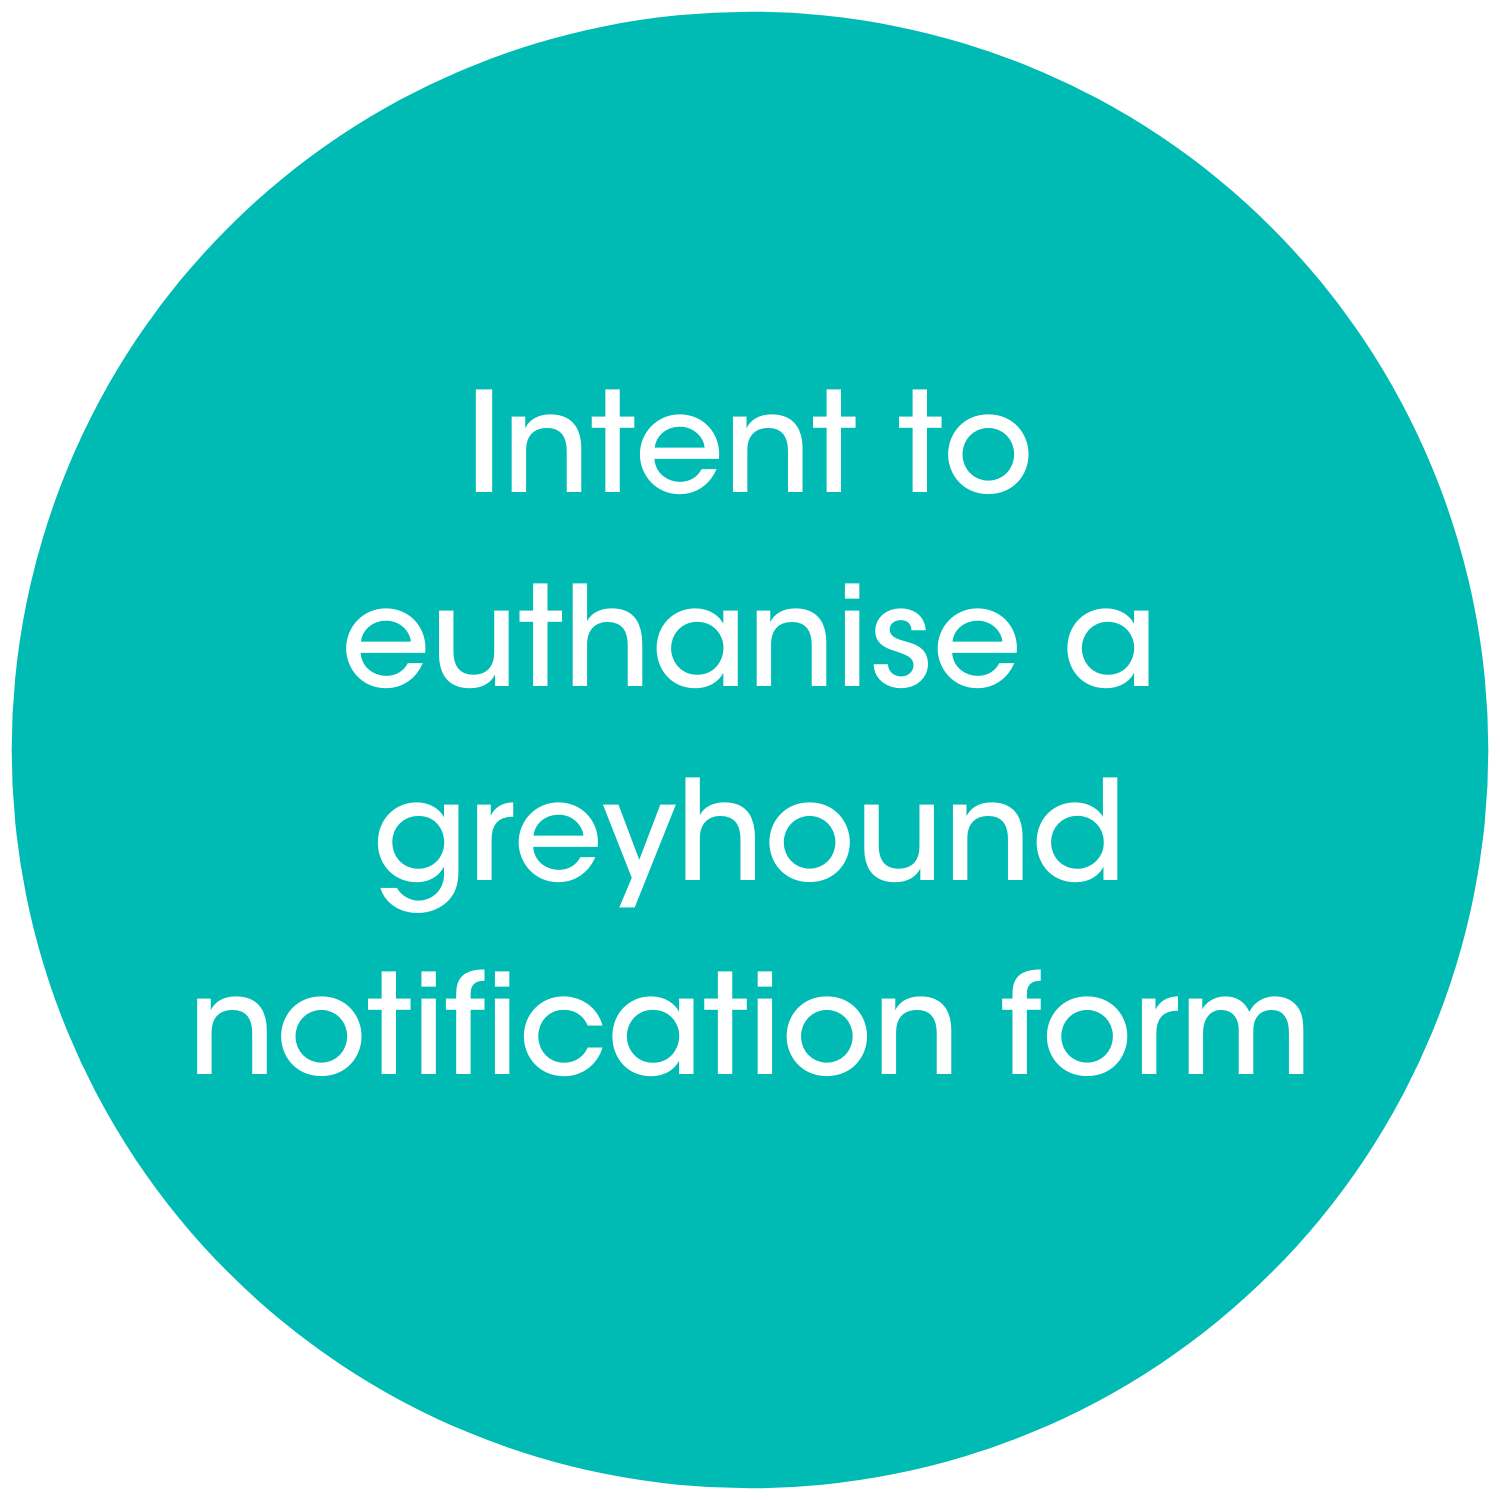 Intent to euthanise notification form link